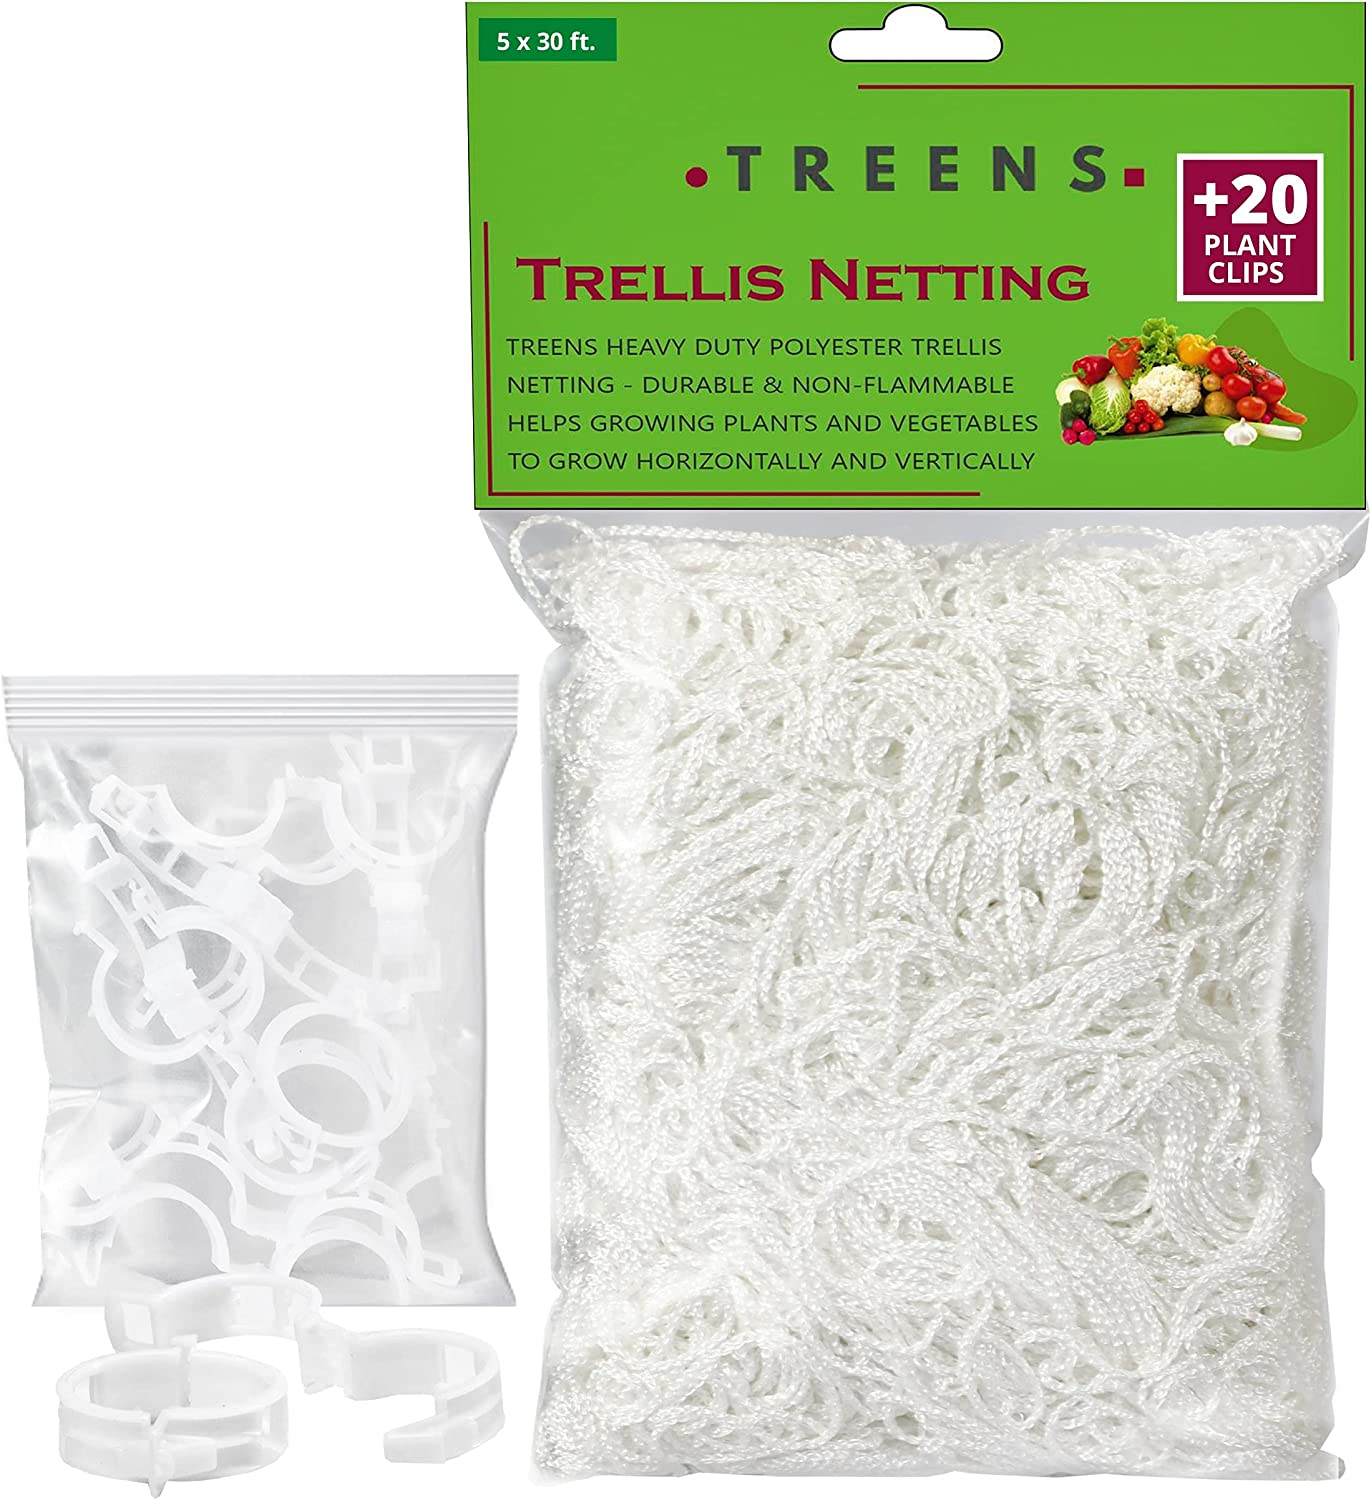 Treens Trellis Netting 5x30 ft. with 20 Additional Plant Clips and 10 Additional Zip Ties, Trellis Net for Climbing Plants Outdoor Best for Cucumber Trellis Tomato Grape Bean and Vine Plants (1 Pack)